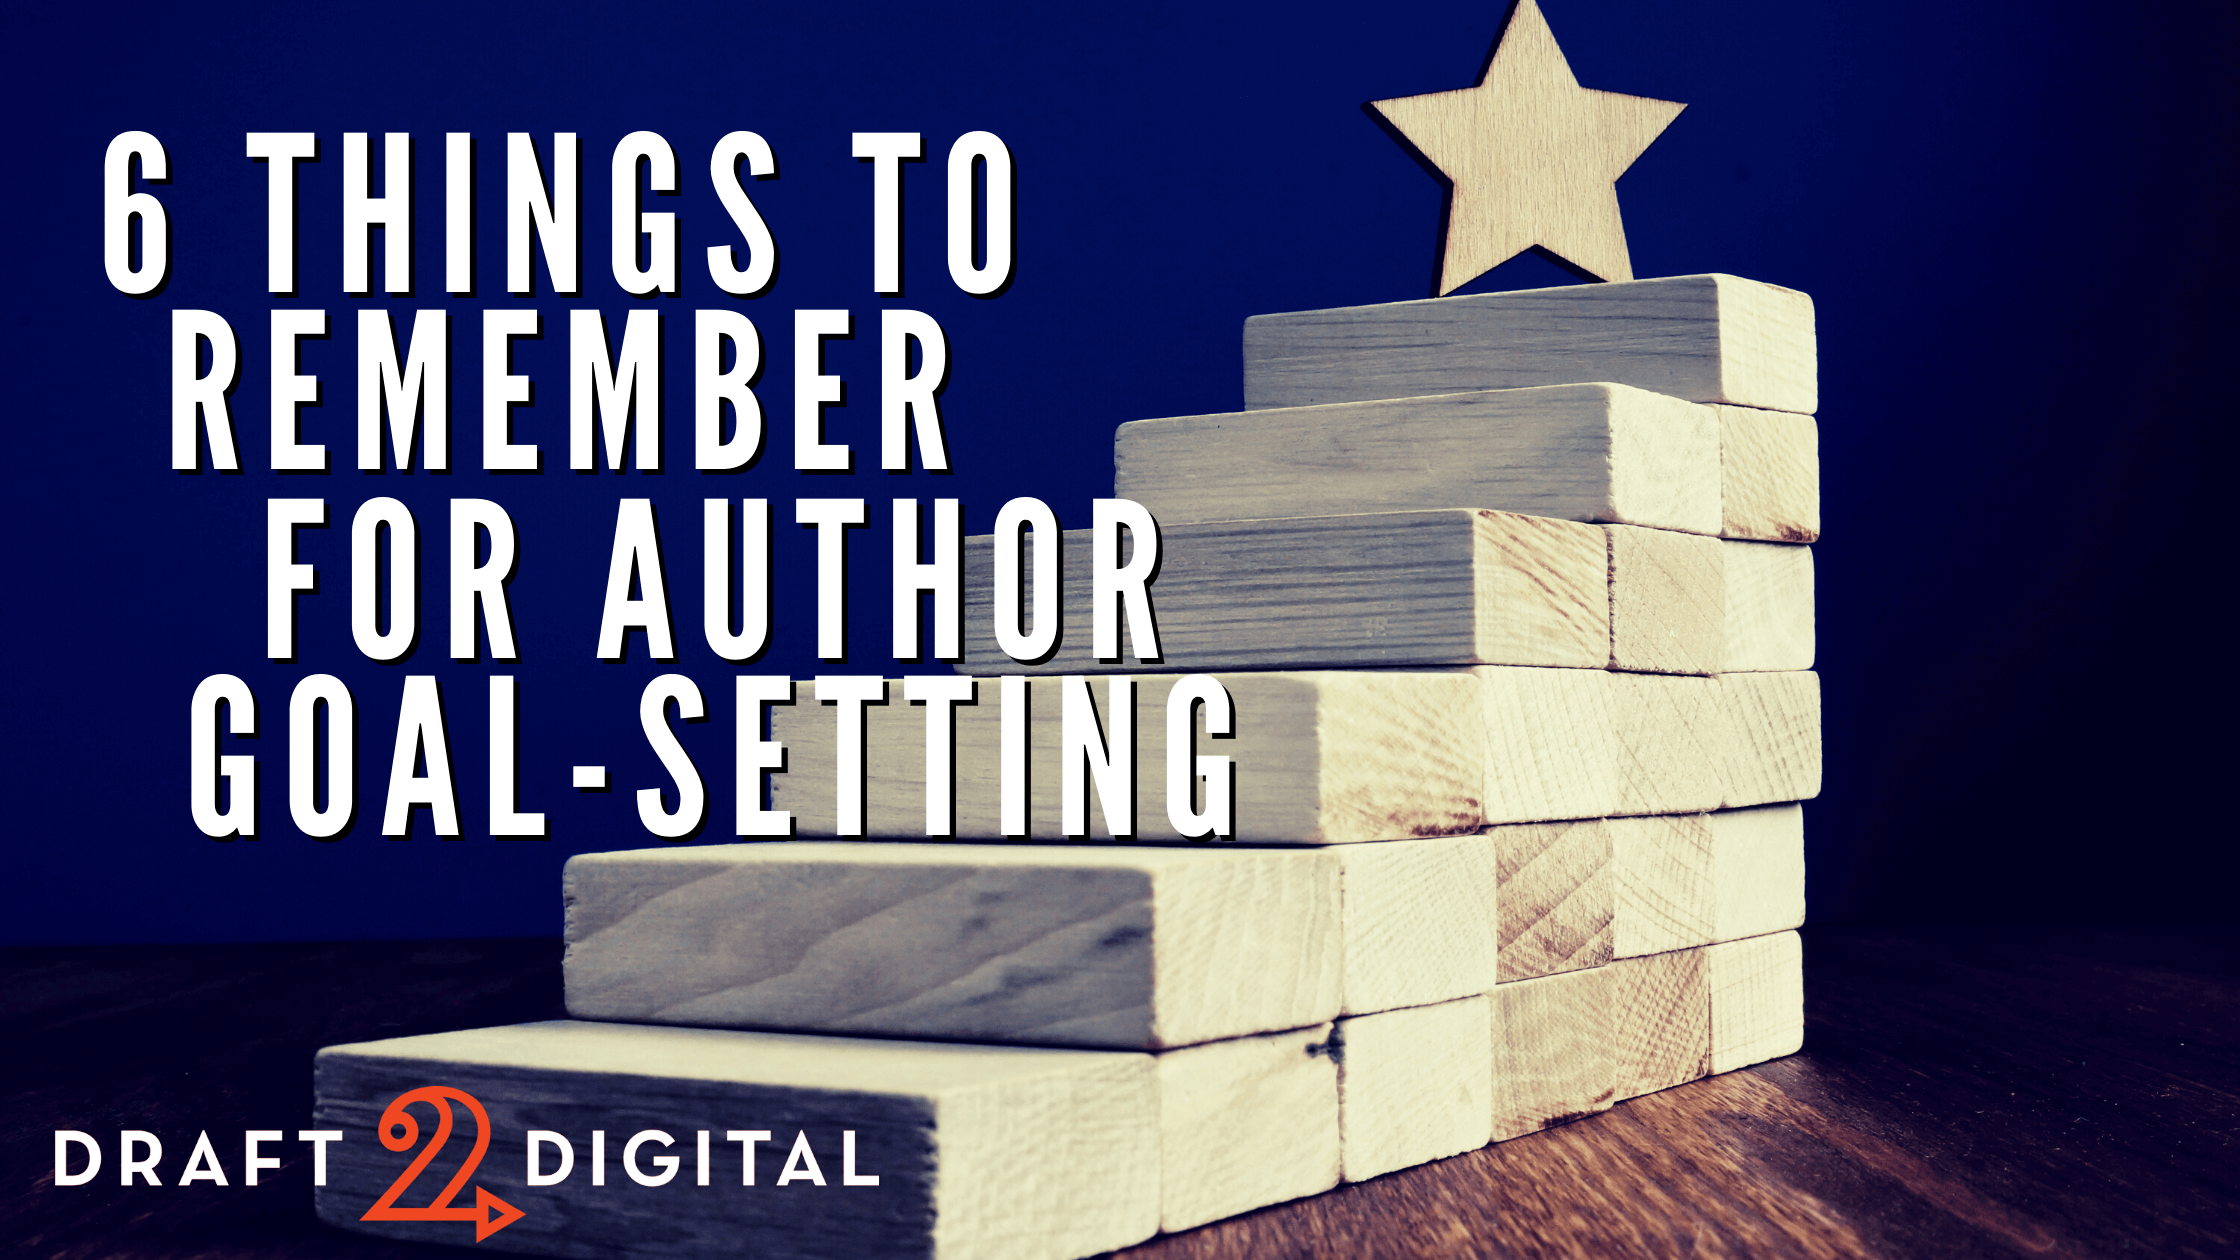 6 Things To Remember For Author Goal-Setting